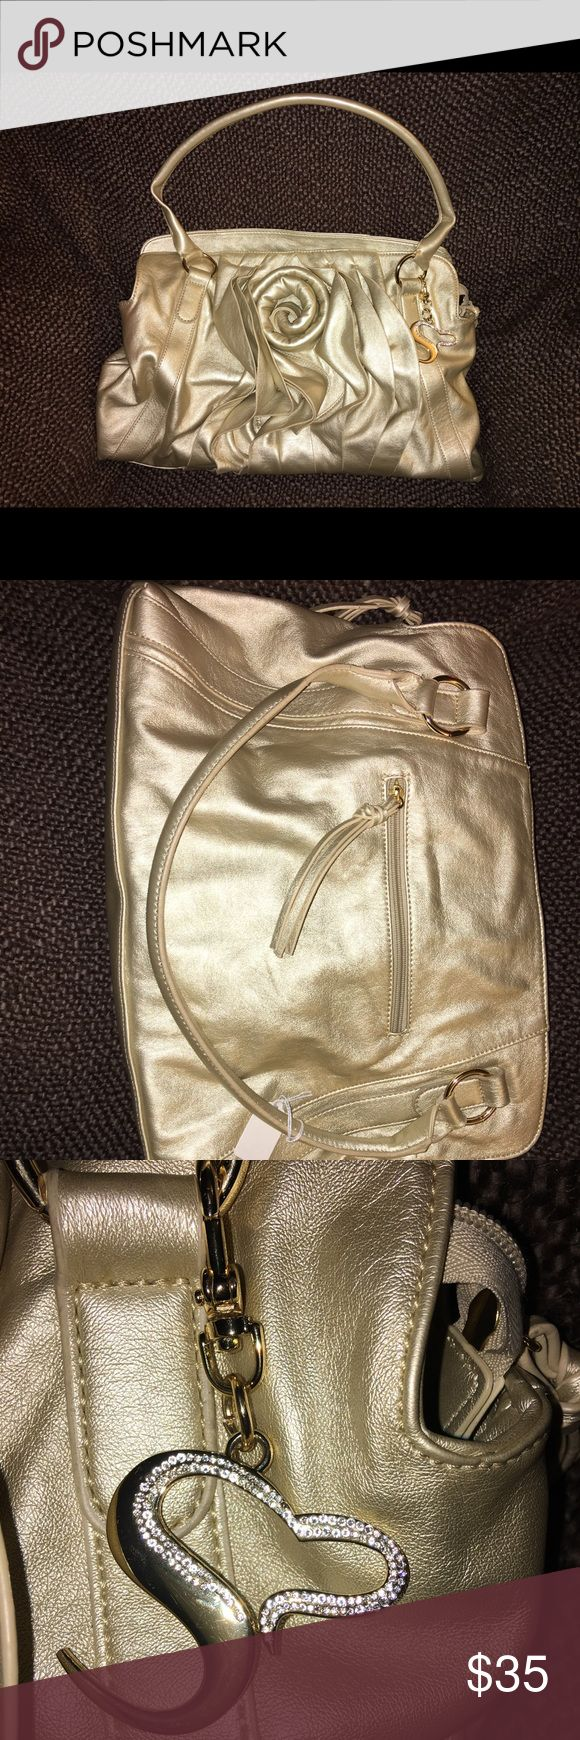 """Serena Williams Gold handbag Really nice.  """"Pleather"""" material, super soft. No rips or tears in lining. Some cracking in tassels. serena williams signature statement Bags Shoulder Bags"""